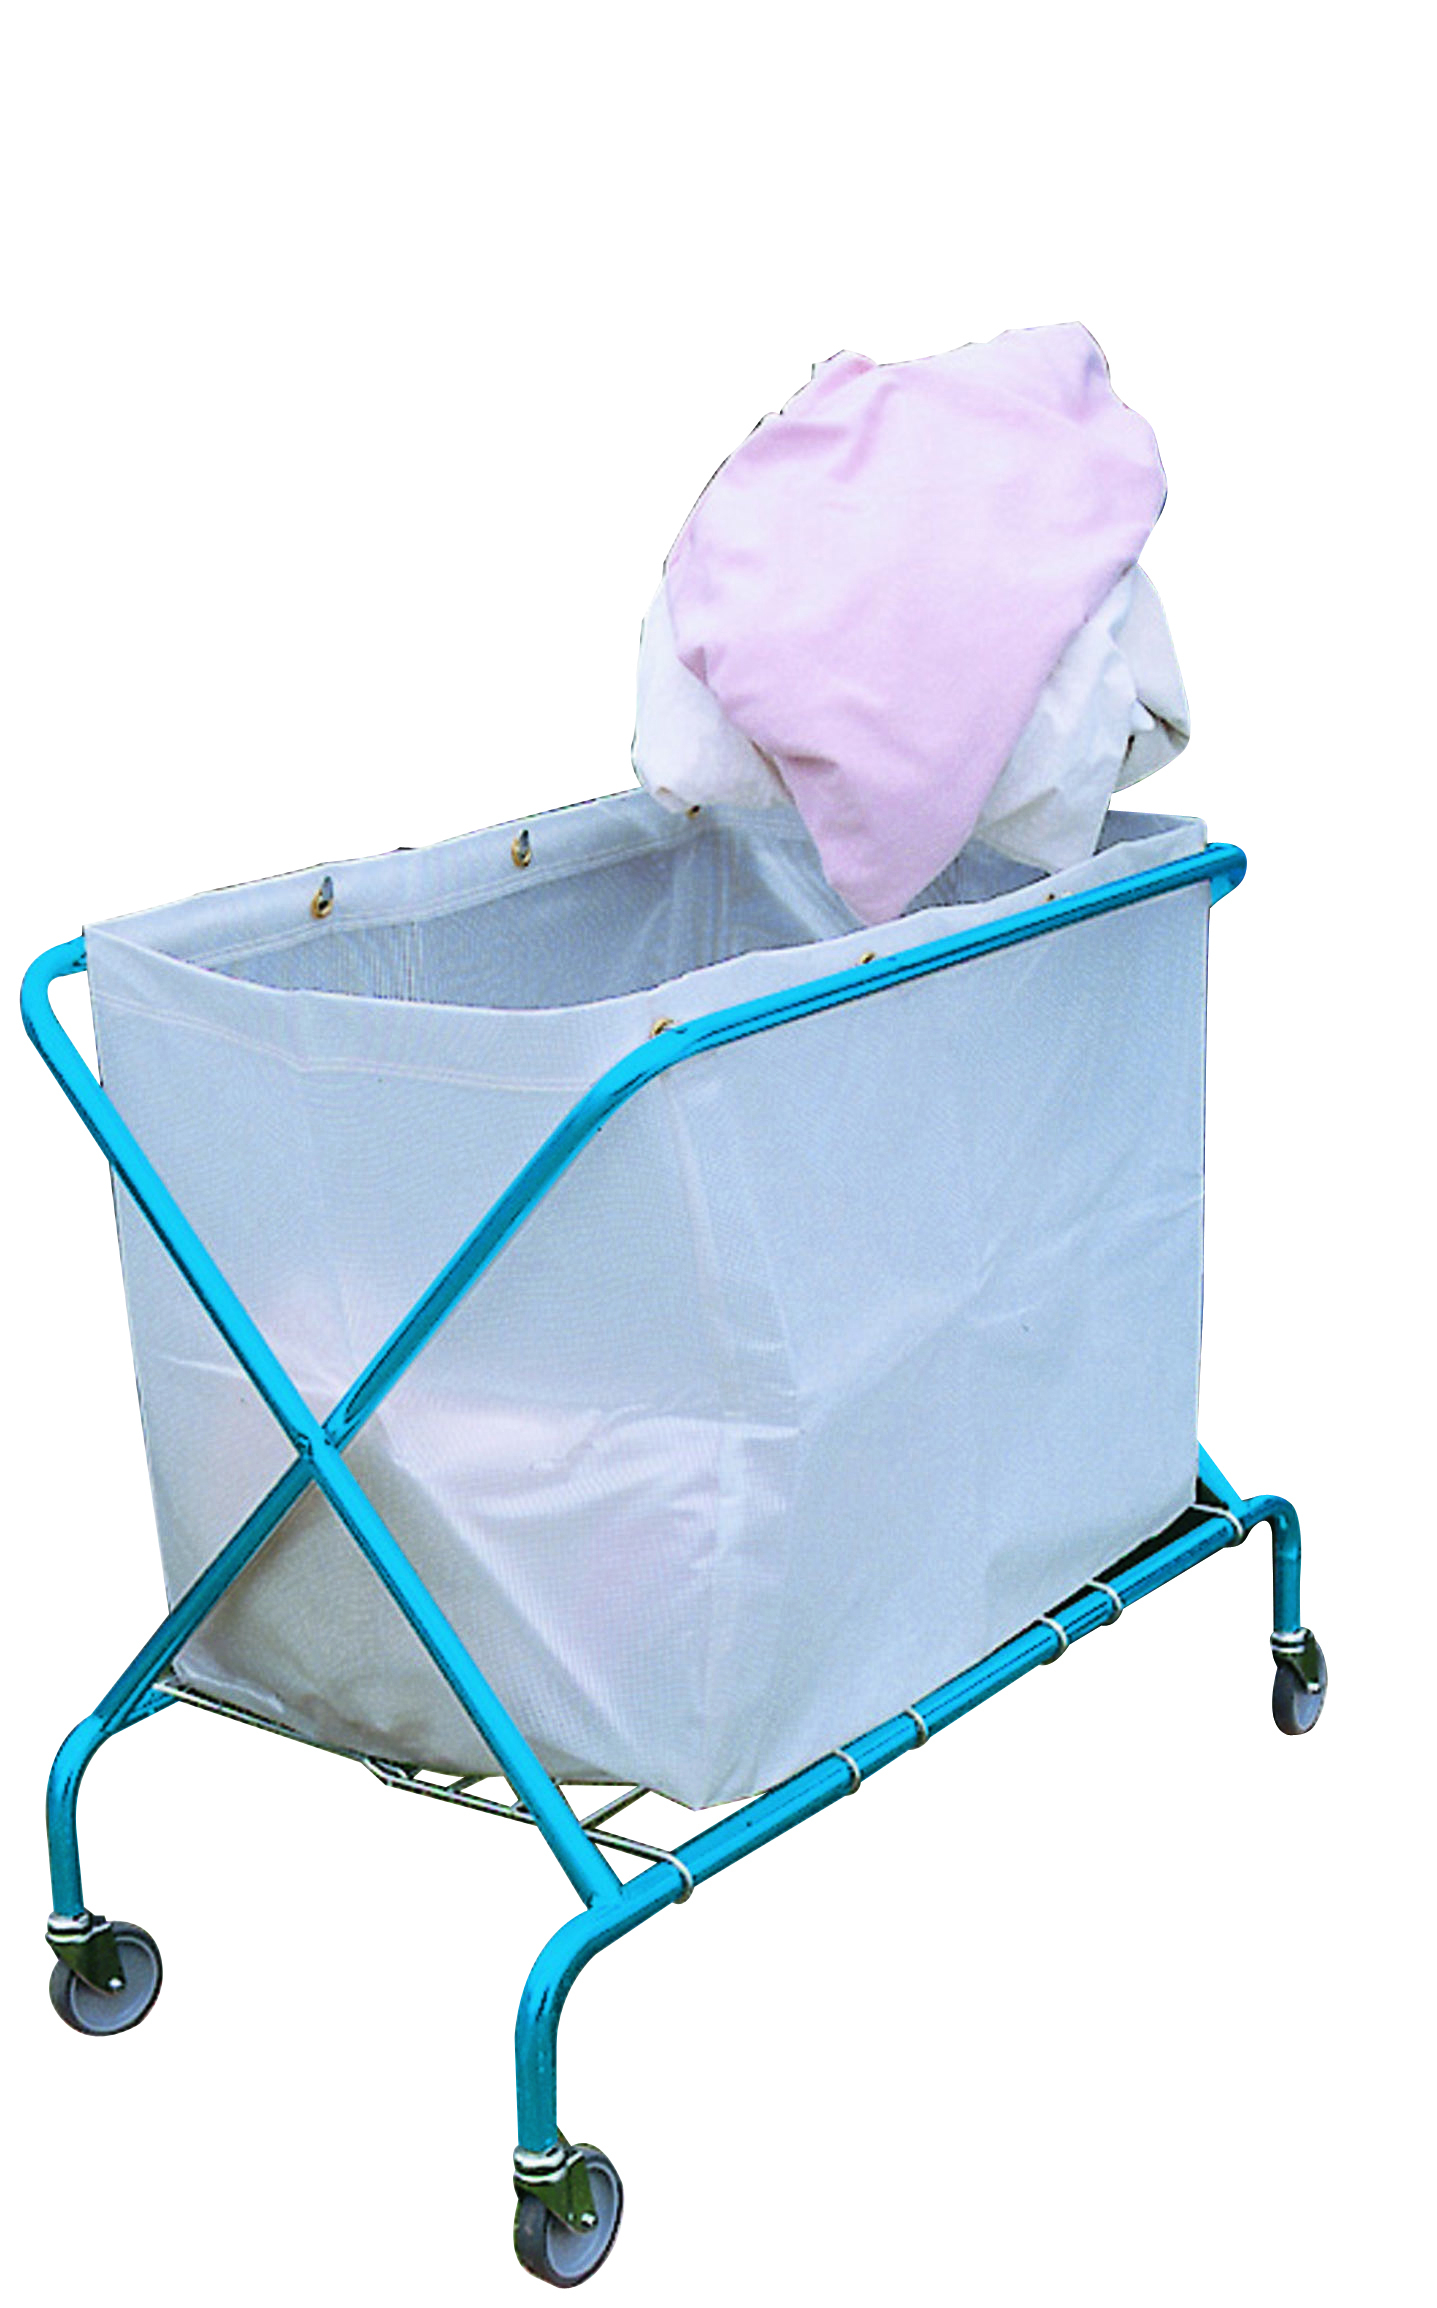 Trolley Service/Laundry Cart-Replacement Bag